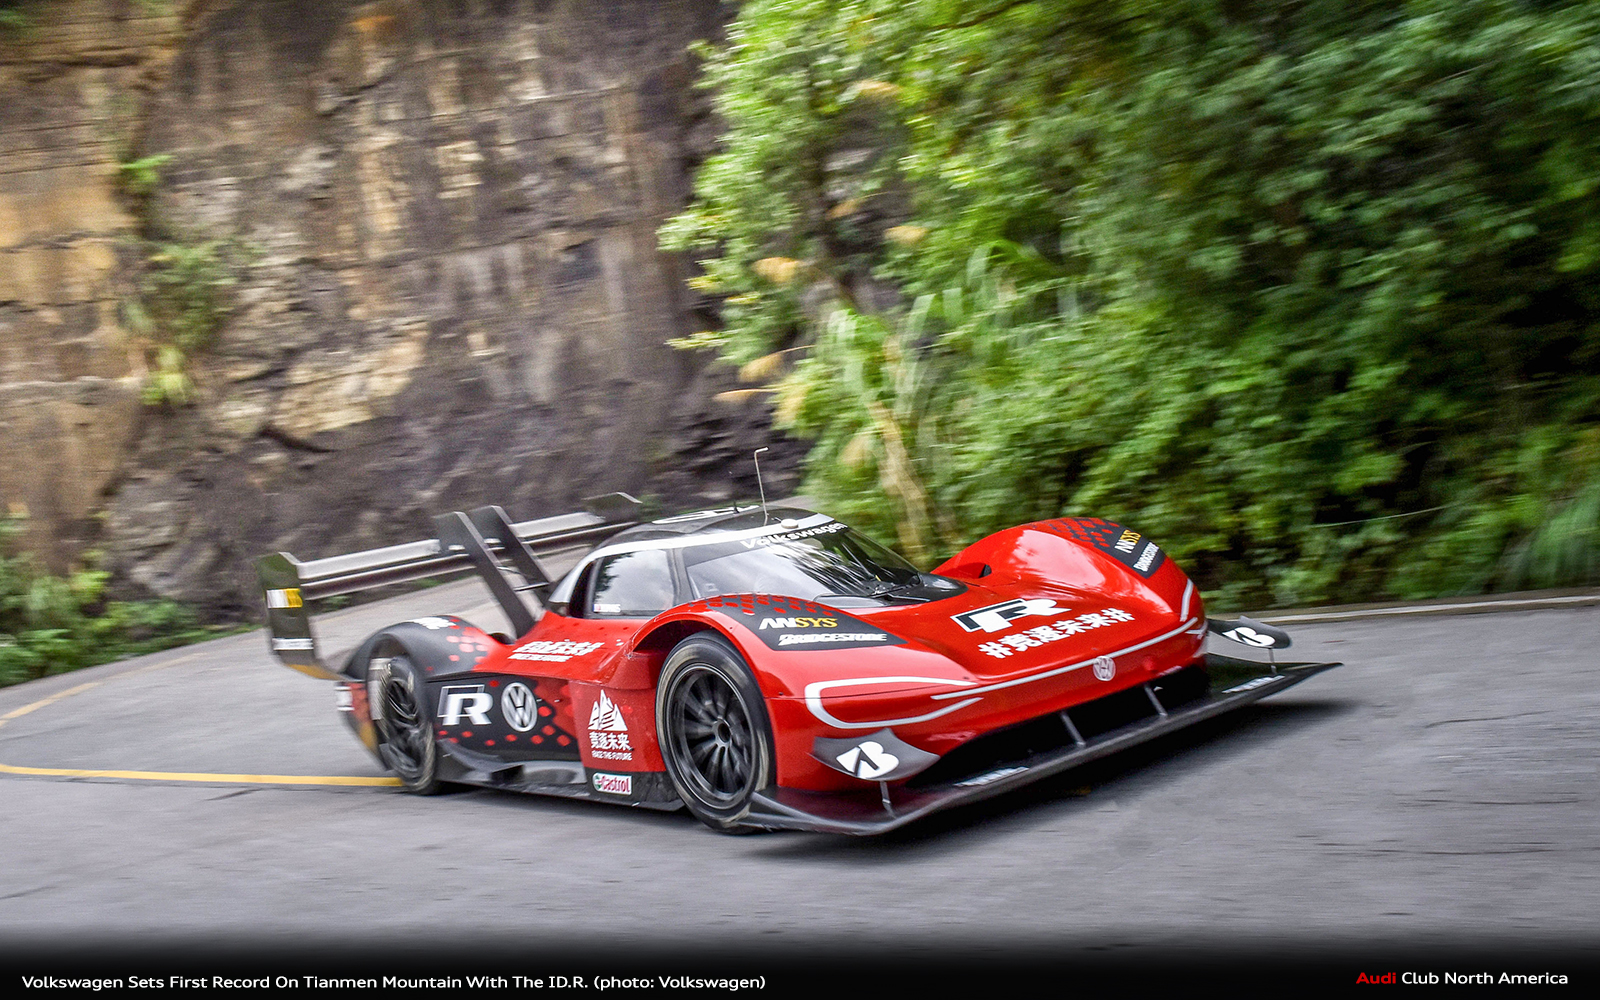 """7:38.585 Minutes To Reach """"Heaven's Gate"""" In China: Volkswagen Sets First Record On Tianmen Mountain With The ID.R."""